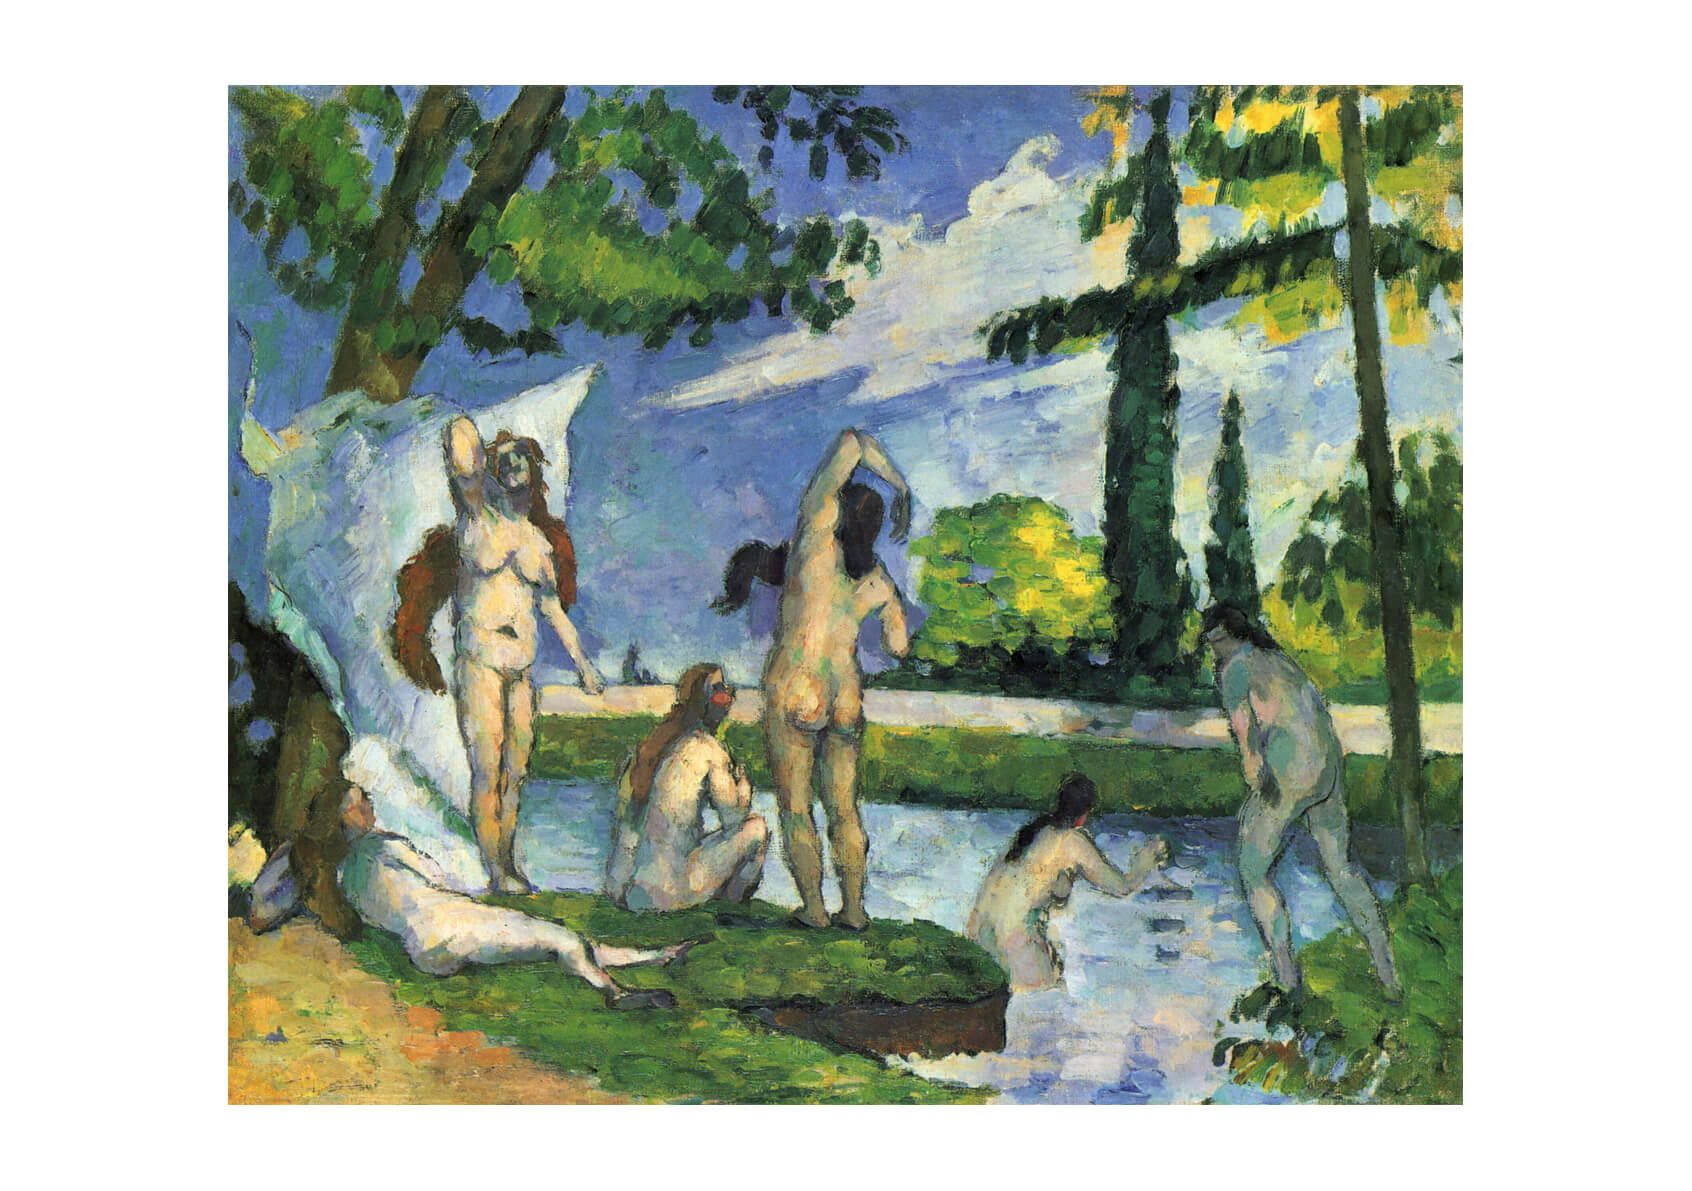 Paul Cezanne - Nudes in the river